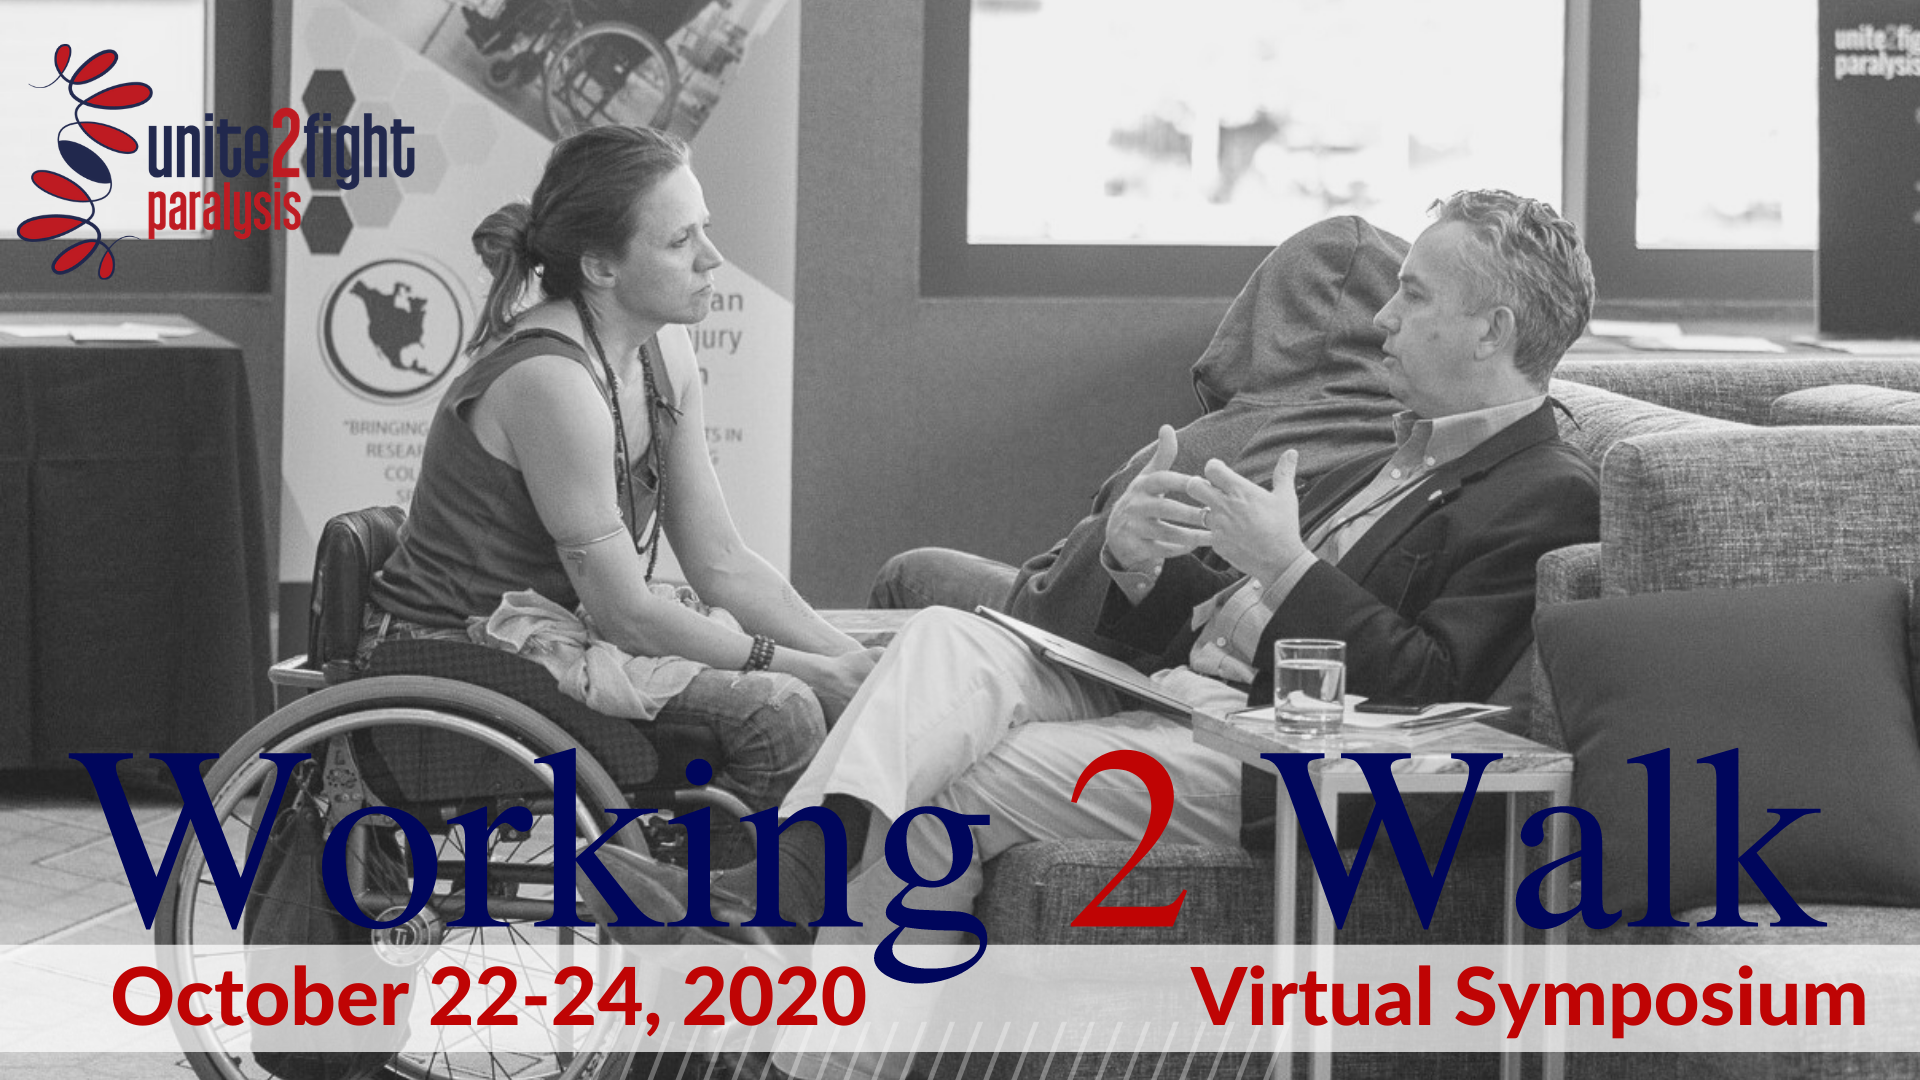 Stakeholder Highlight: SCI Advocacy - Working 2 Walk 2020